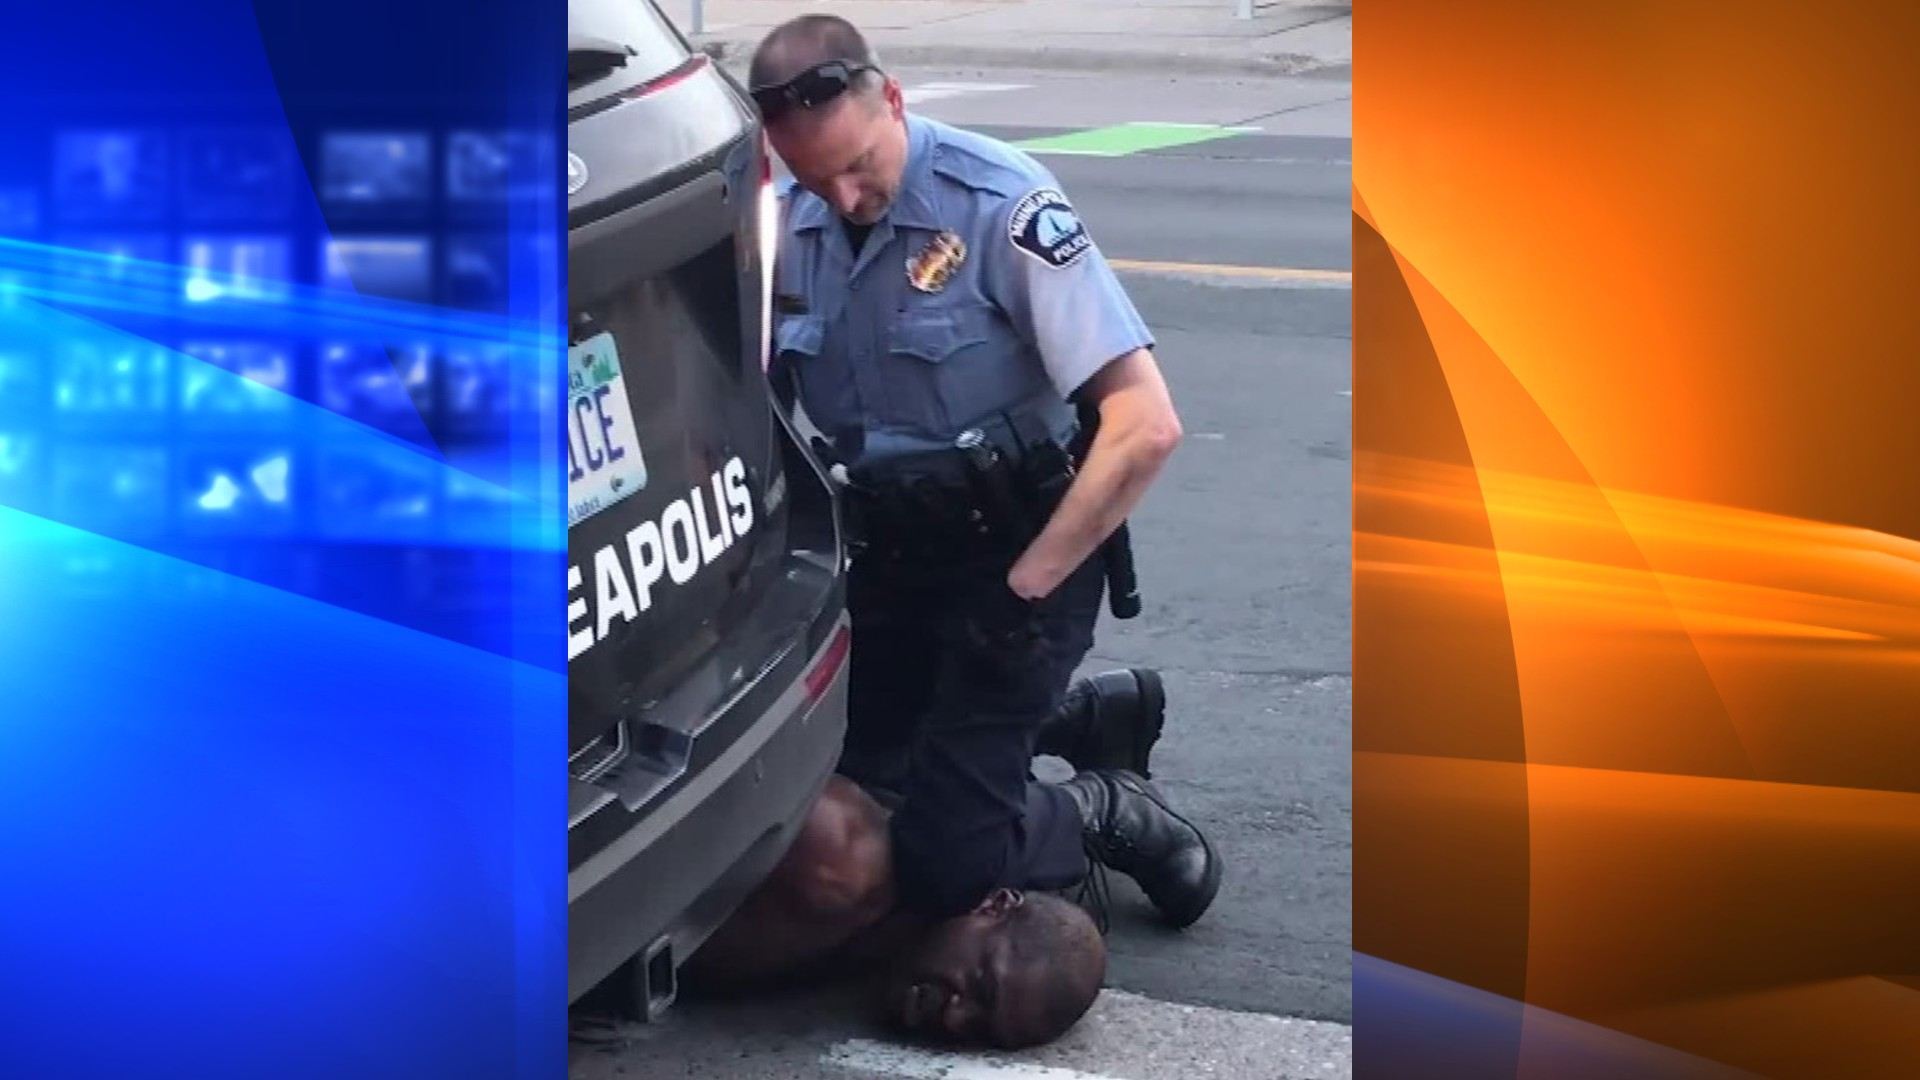 Officer Derek Chauvin is shown kneeling on George Floyd's nexk on May 25, 2020, in a still from a video taken by Darnella Frazier and distributed by CNN.